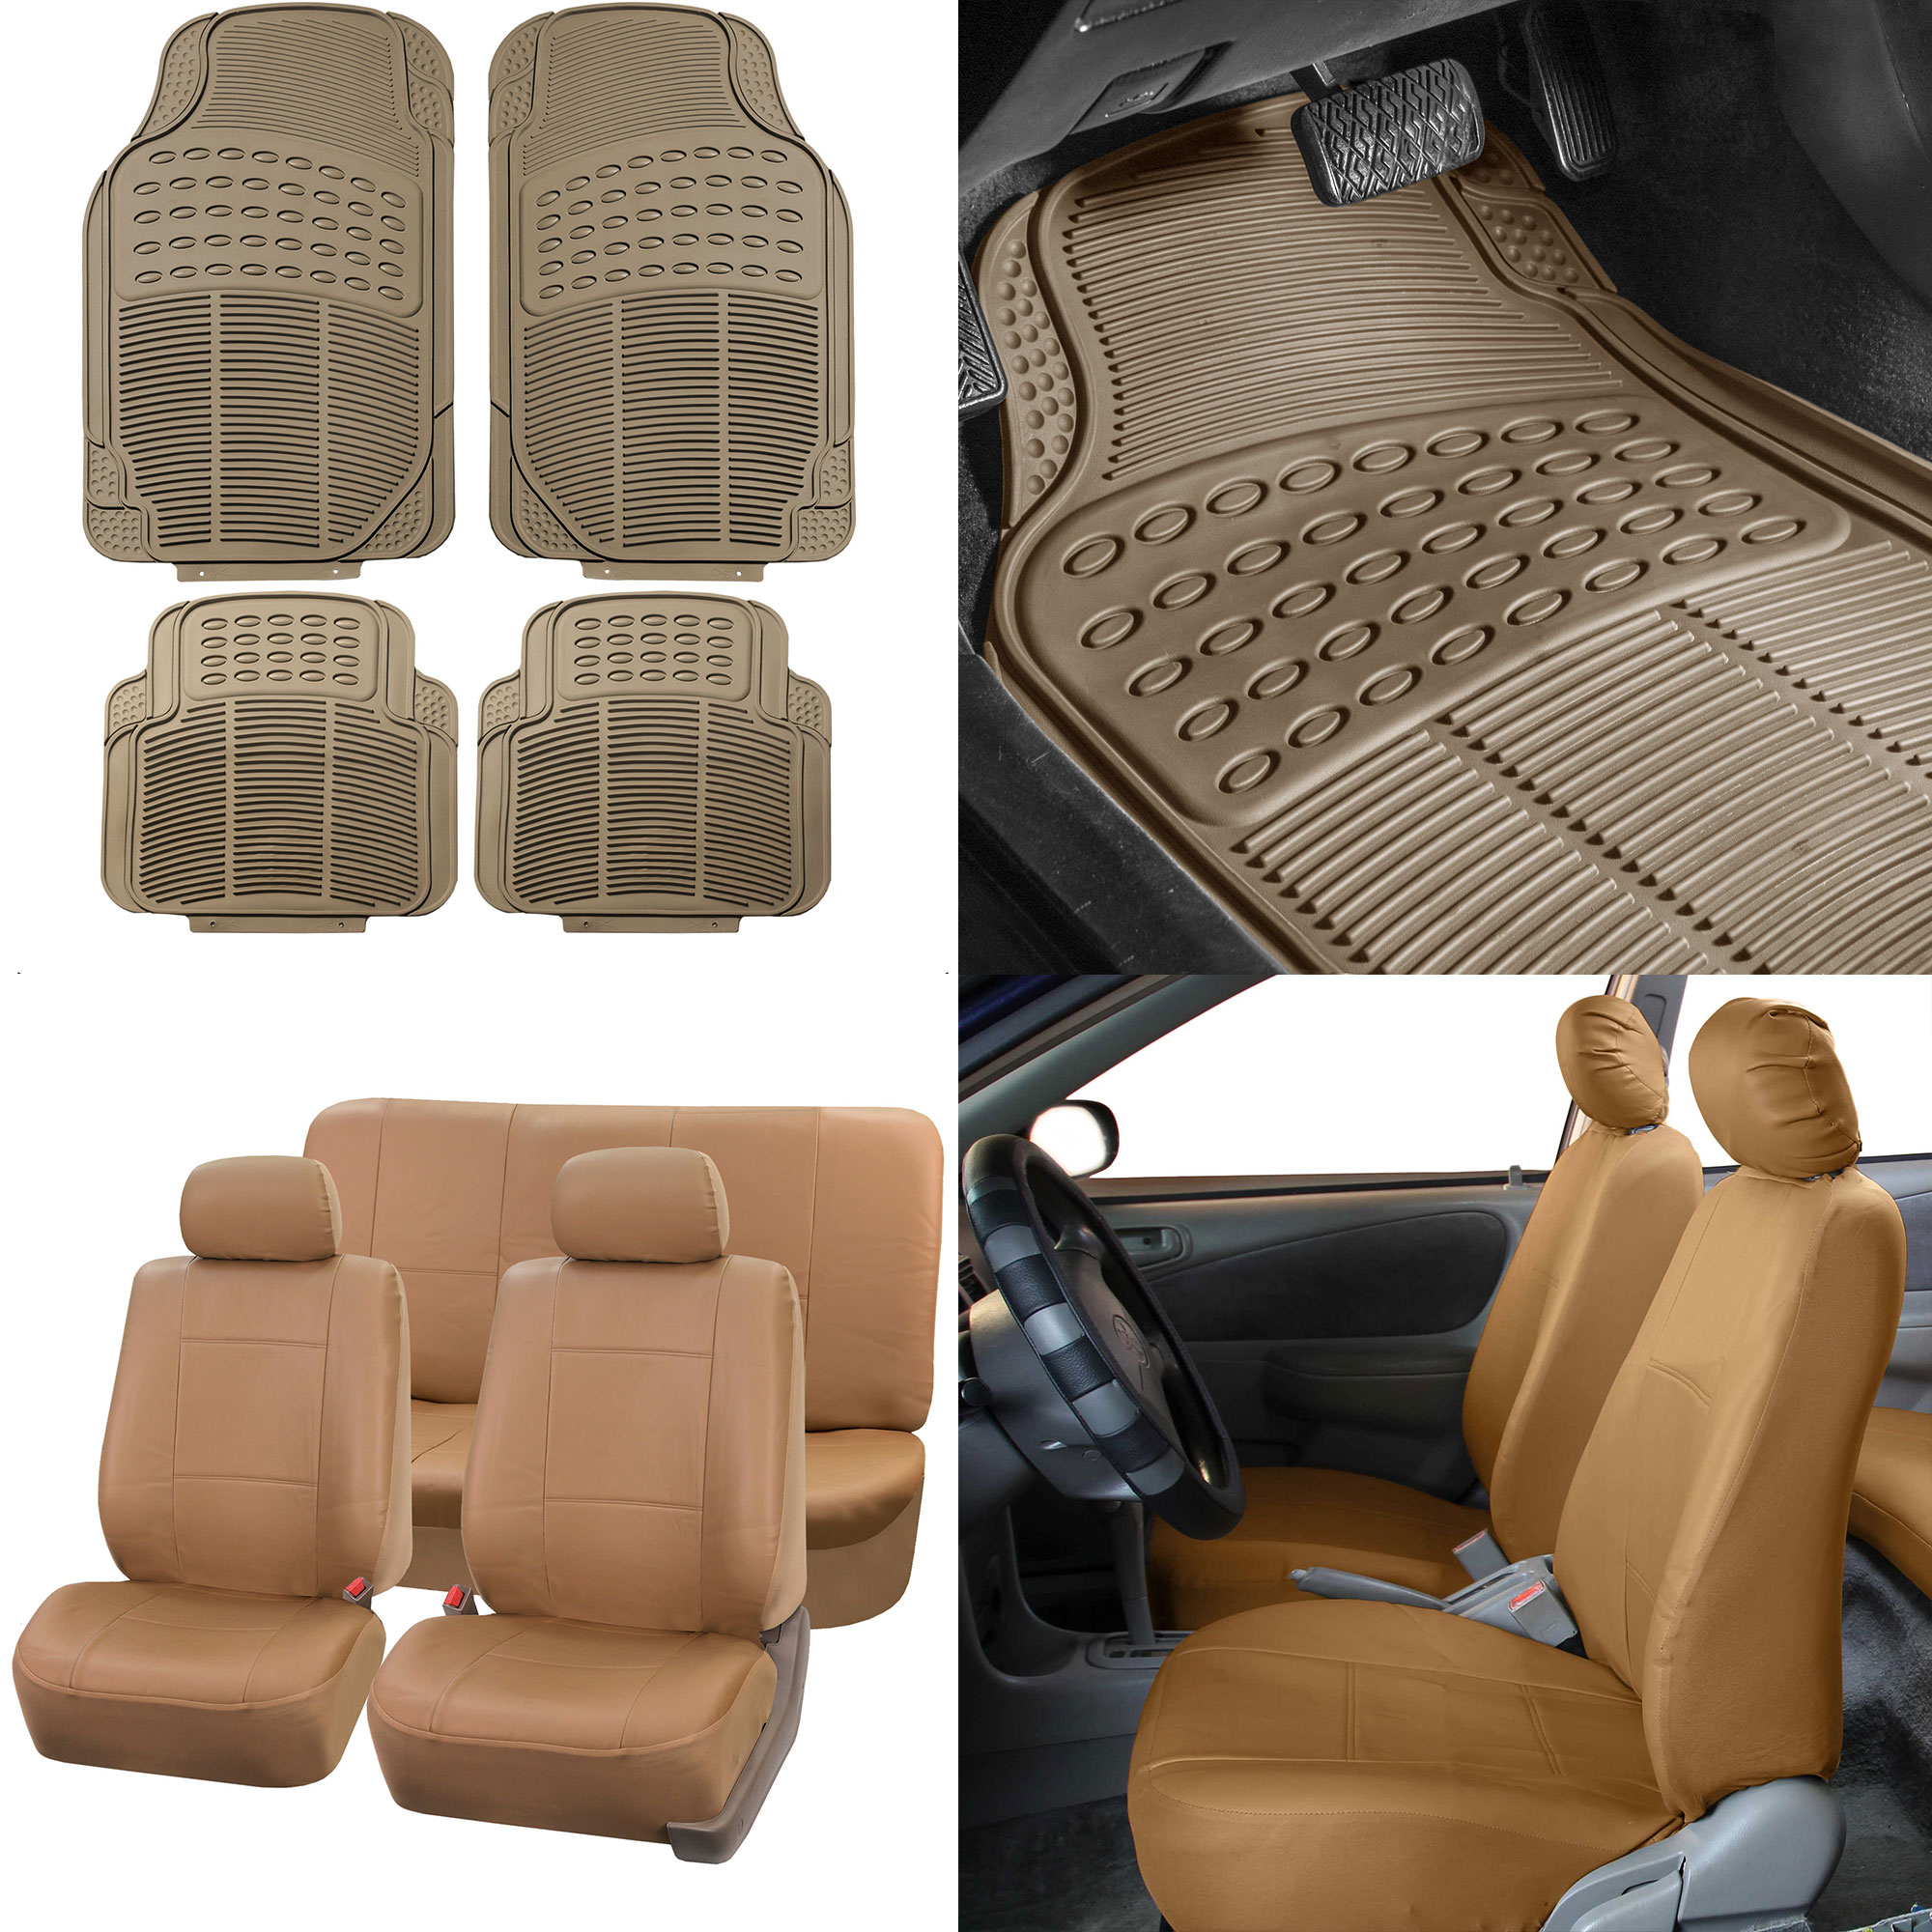 Tan PU Leather Seat Covers For Car SUV W/ Beige Heavy Duty